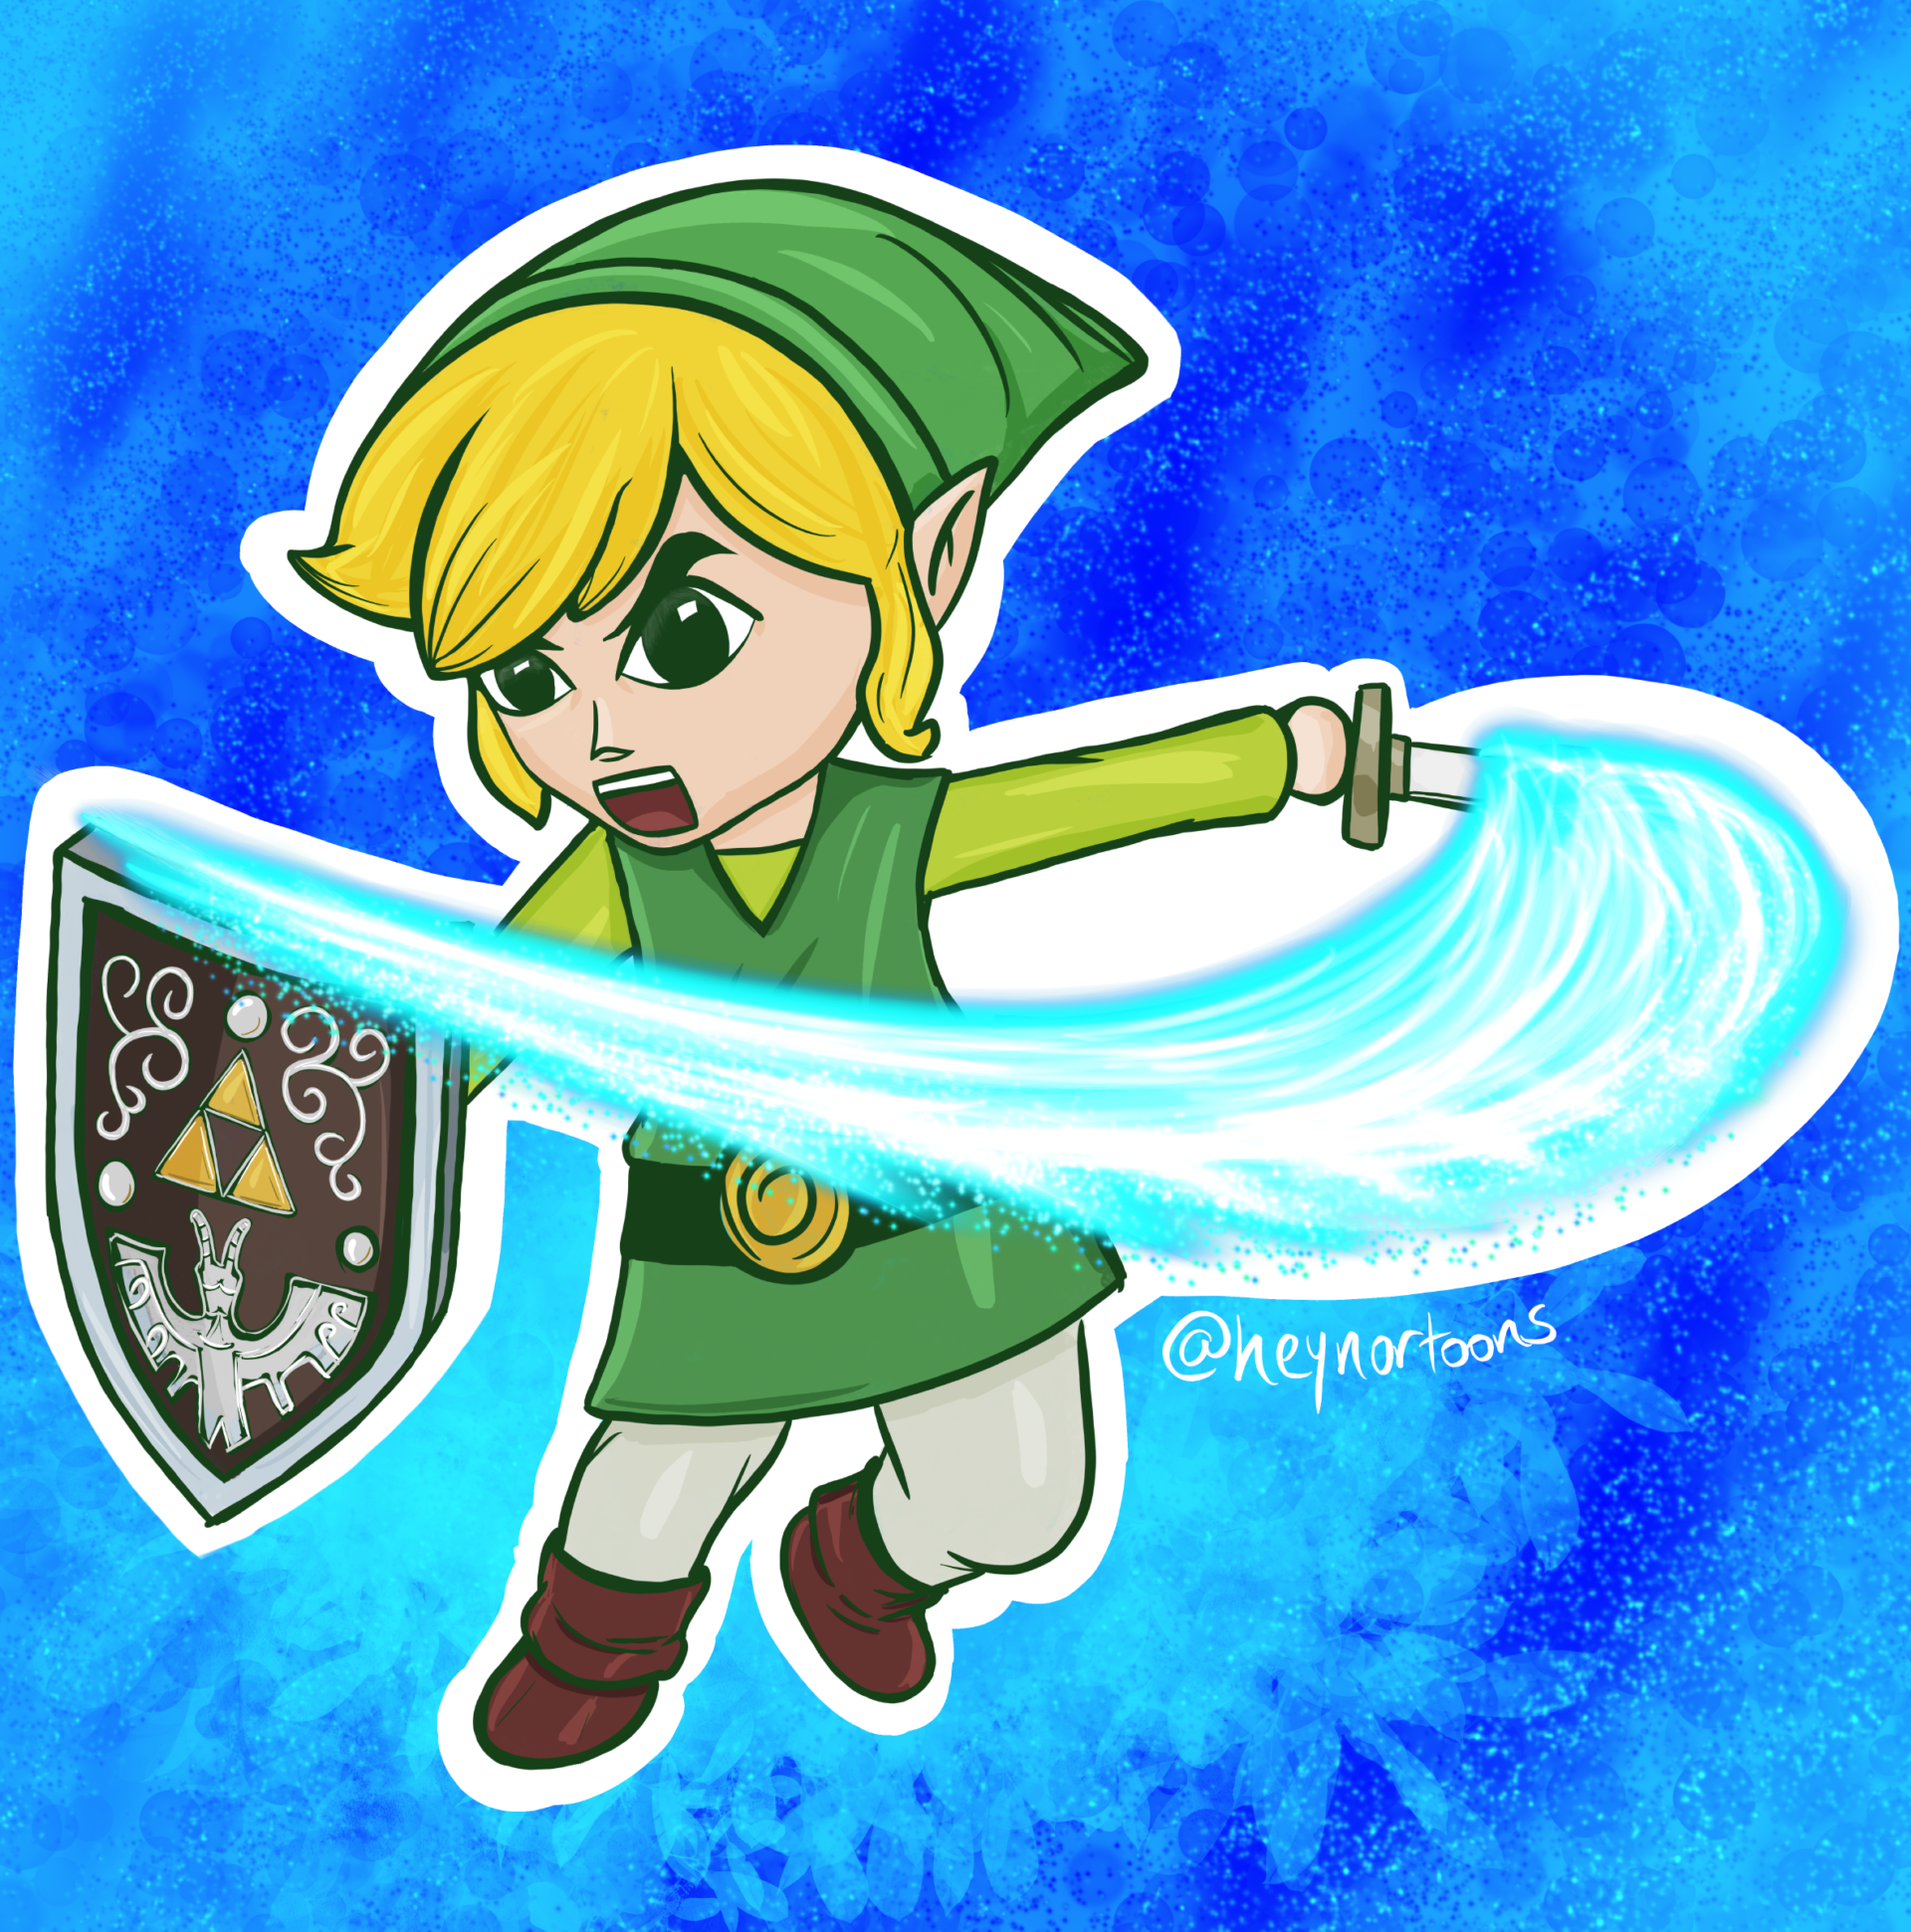 Toon Link from Wind Waker